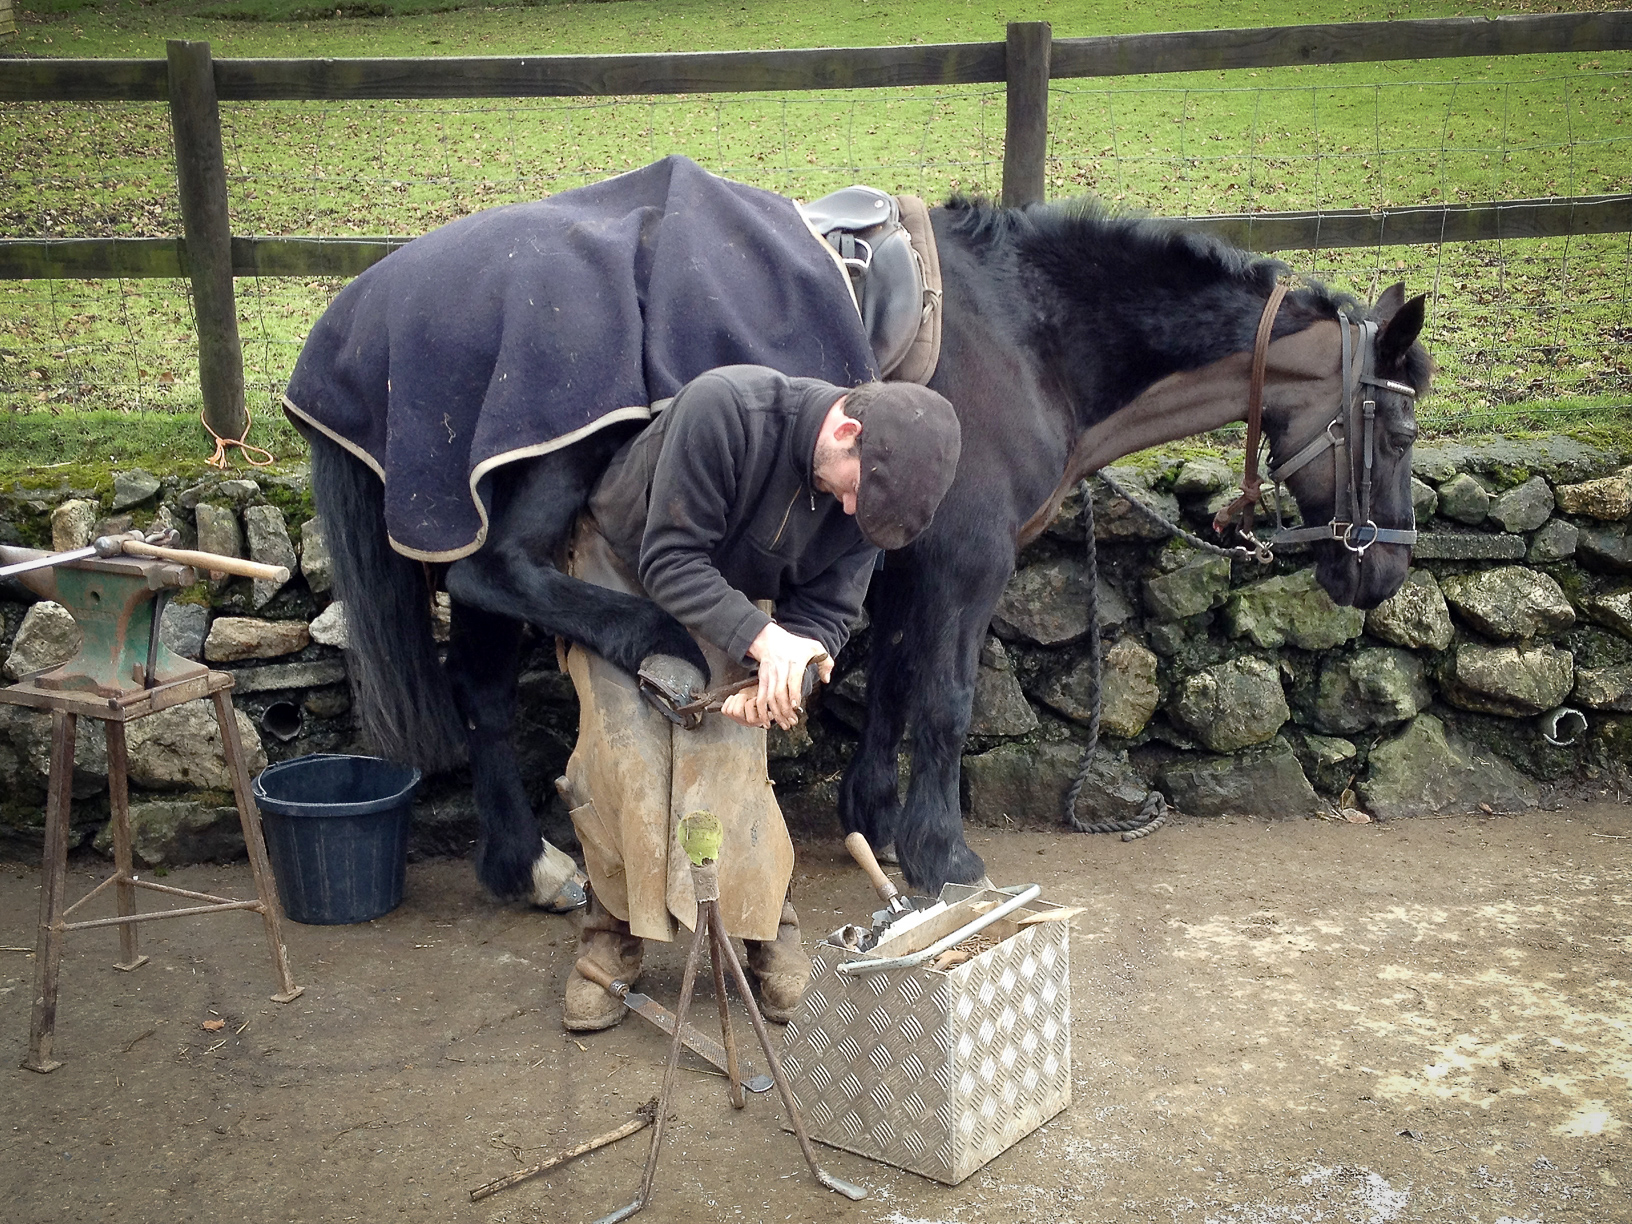 Shoe change at Cholwell Stables near Mary Tavy